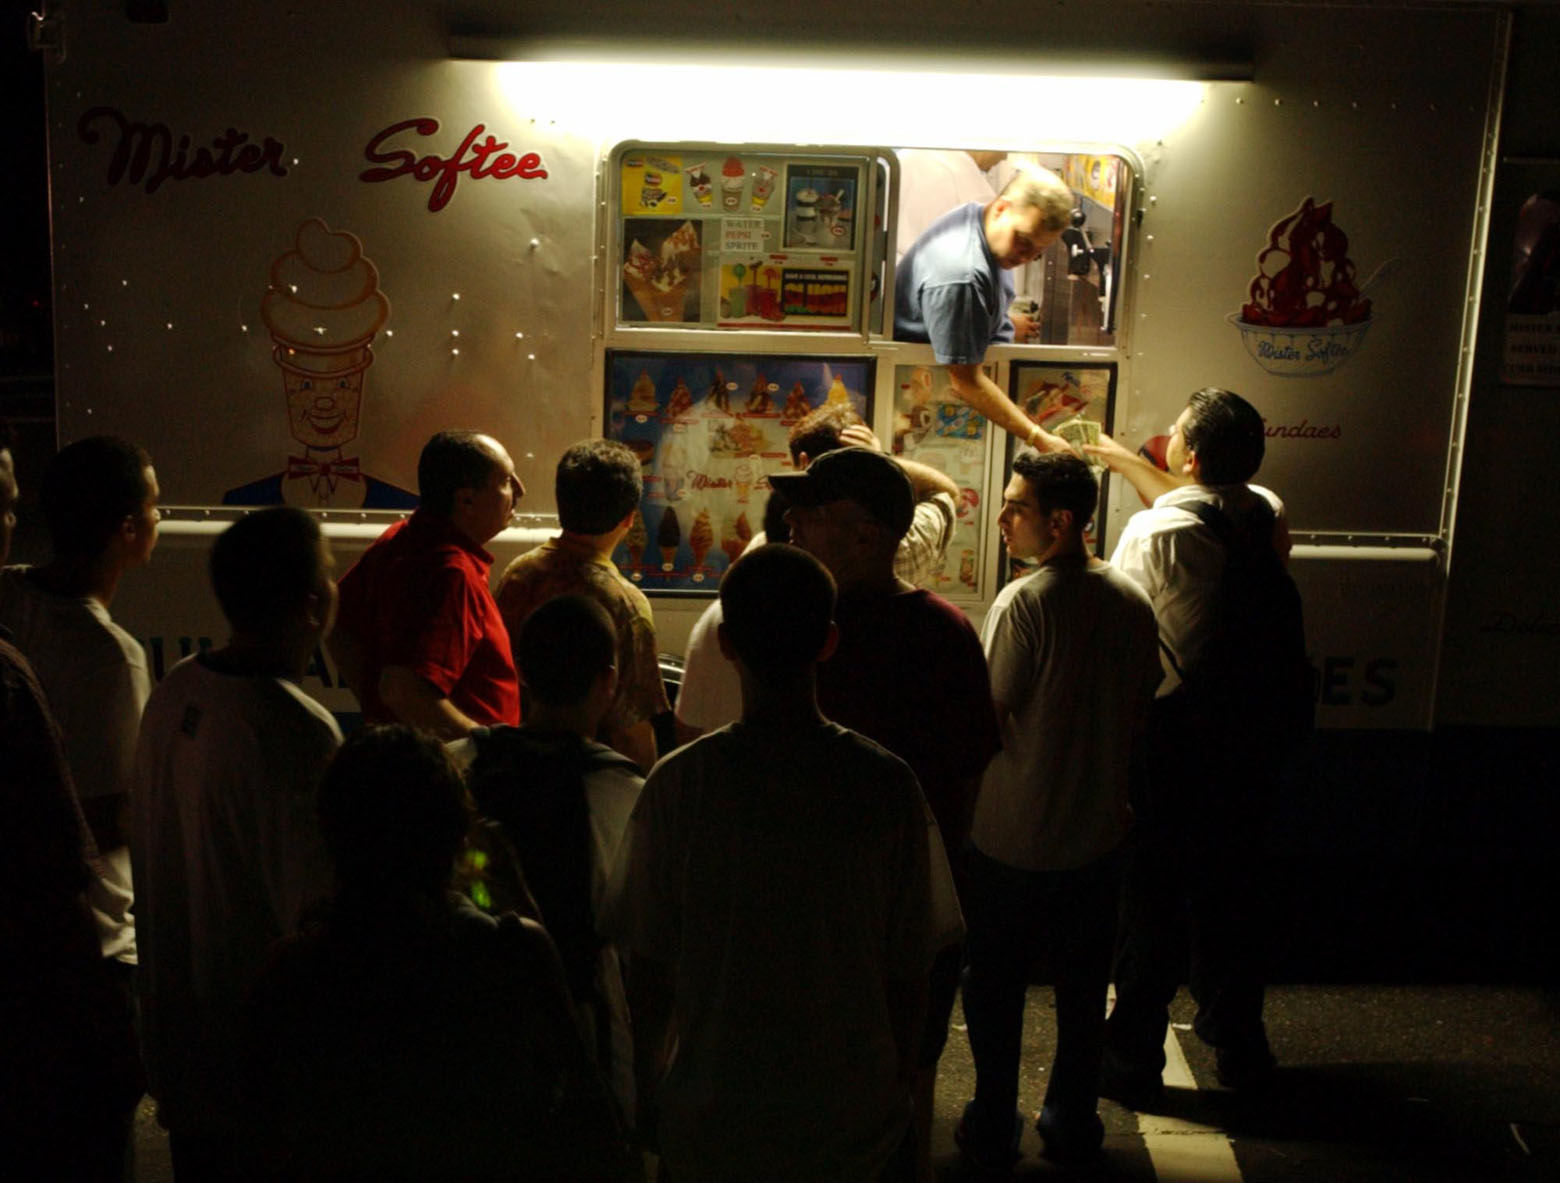 Patrons crowd a Mister Softee ice cream truck to buy ice cream as darkness envelops Weehaken, N.J. during a massive power outage Thursday Aug. 14, 2003. A massive power blackout hit U.S. and Canadian cities Thursday. (AP Photo/Jacqueline Larma)